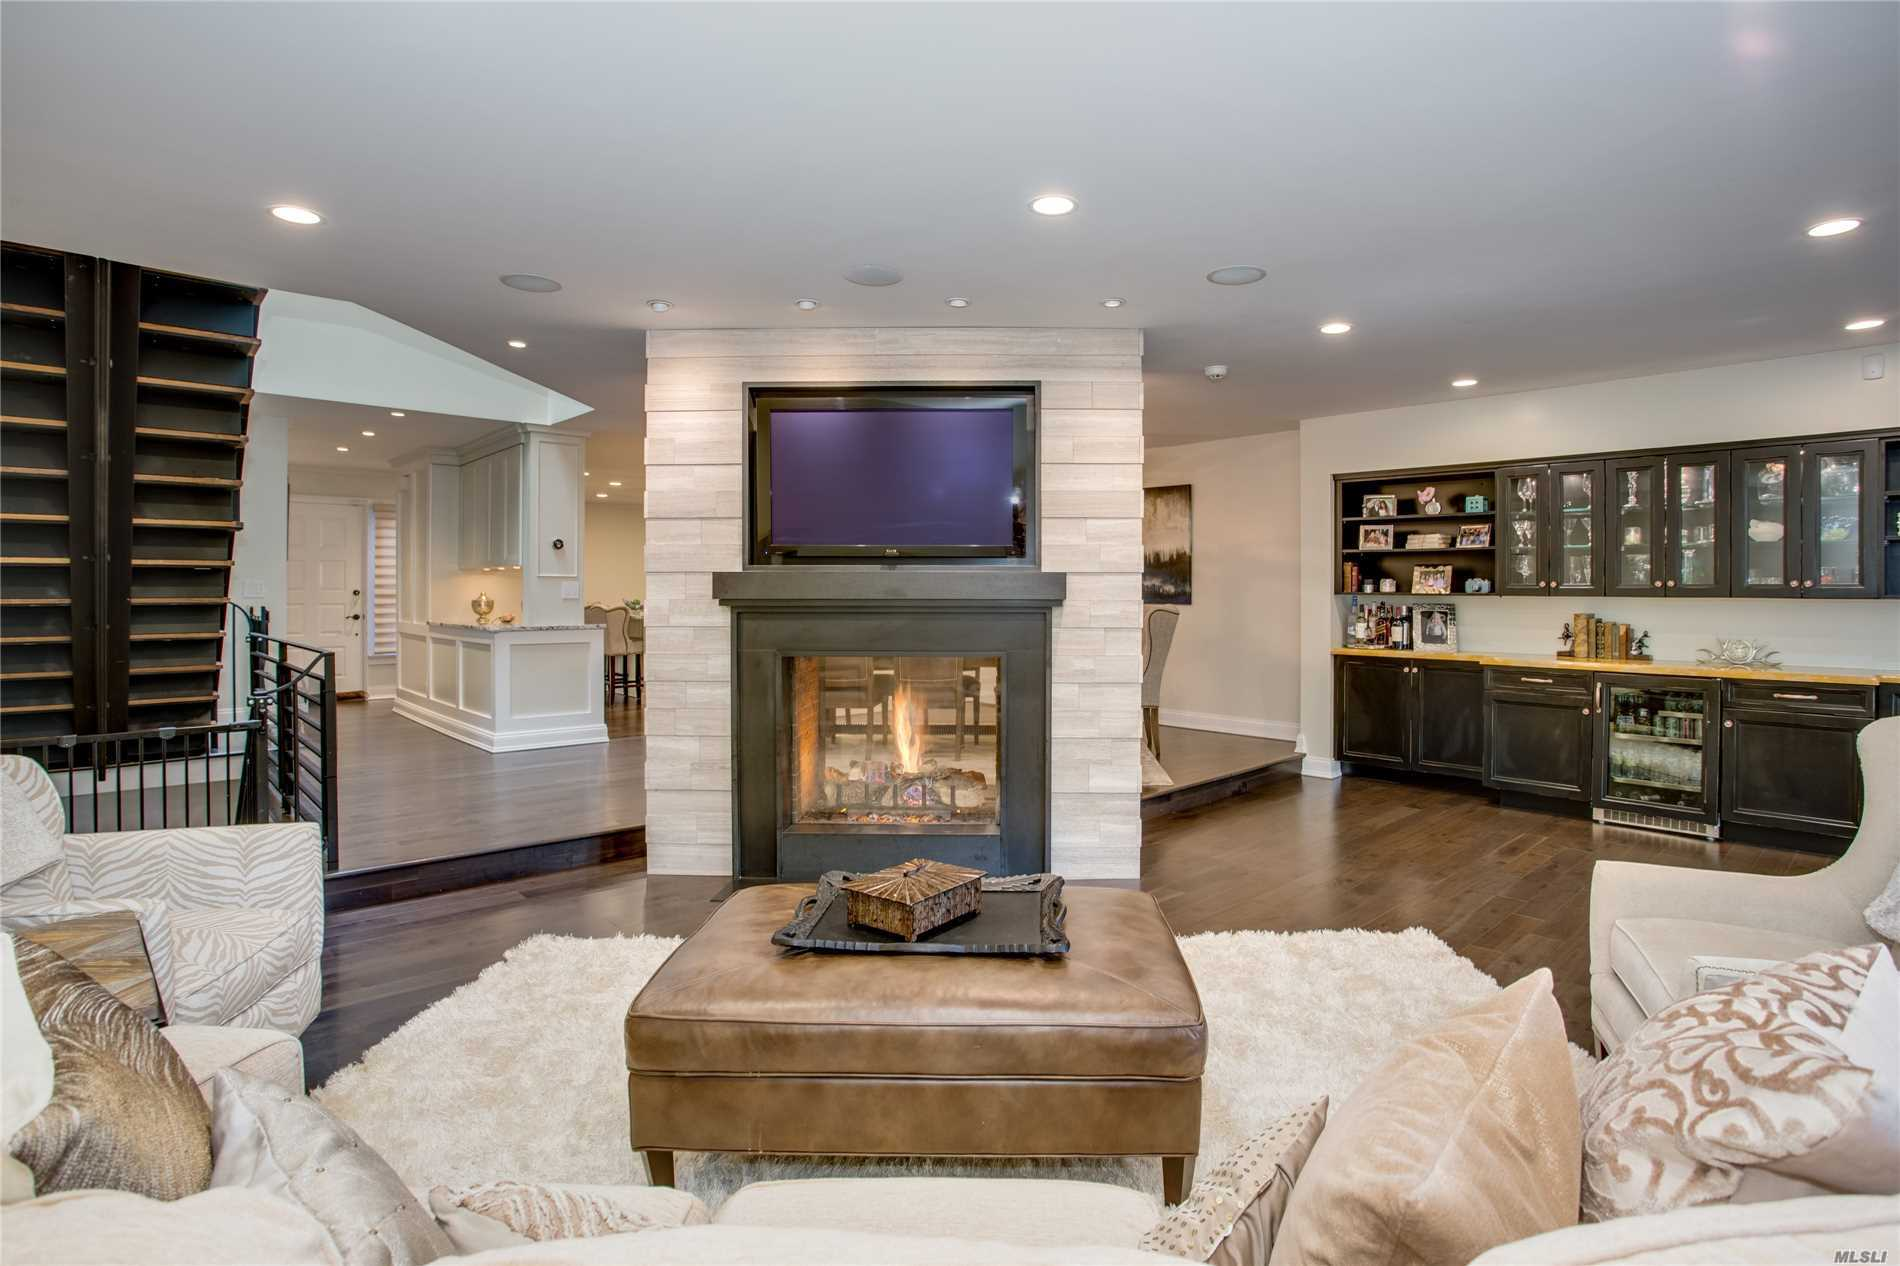 Ultimate Statement of Luxury and fine design rarely found in the Condo marketplace. Elegance Renovated And Redesigned, with the finest designer high end finishes Customized Floor Plan, Dual Fireplaces, Designer Stone throughout Kitchen and Baths, Stainless Steel Appliances, Center Isle, Eat-In-Kitchen, New Modern Steel Railings, Custom Mill Work, Trim, and Moldings Throughout, Walnut Wood Floors. Master Suite Retreat with Dream Closet Finished Basement with wine cellar. RARE FIND